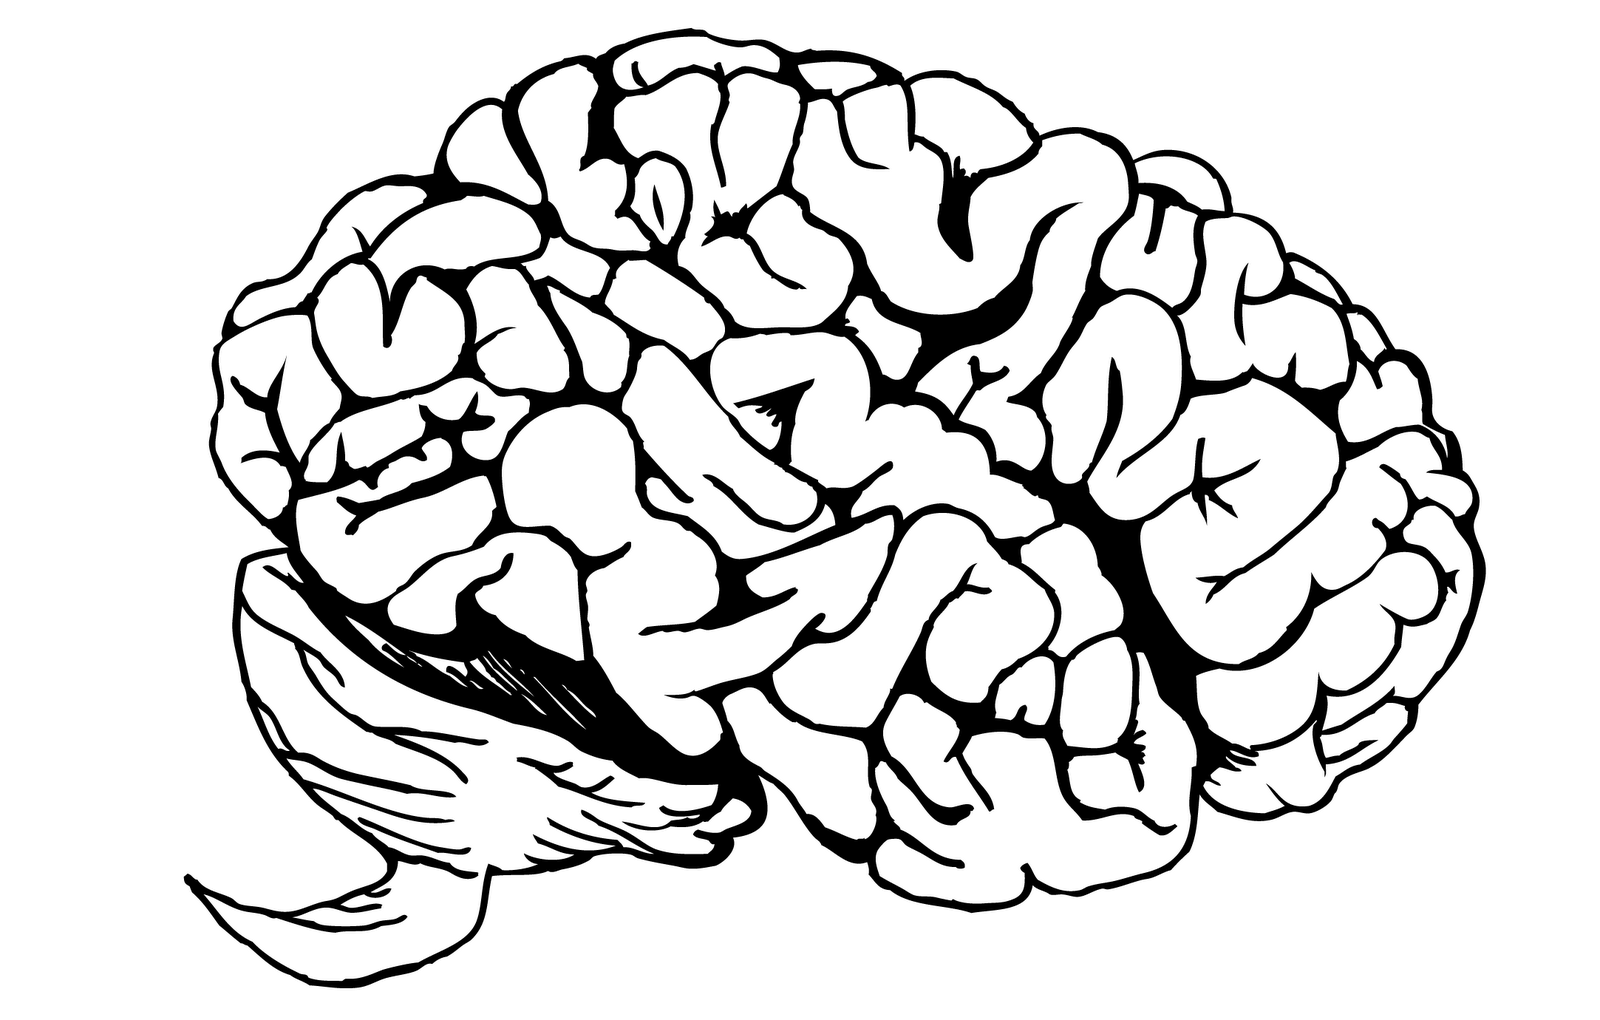 Line Drawing Brain : Brain line drawing clipart best